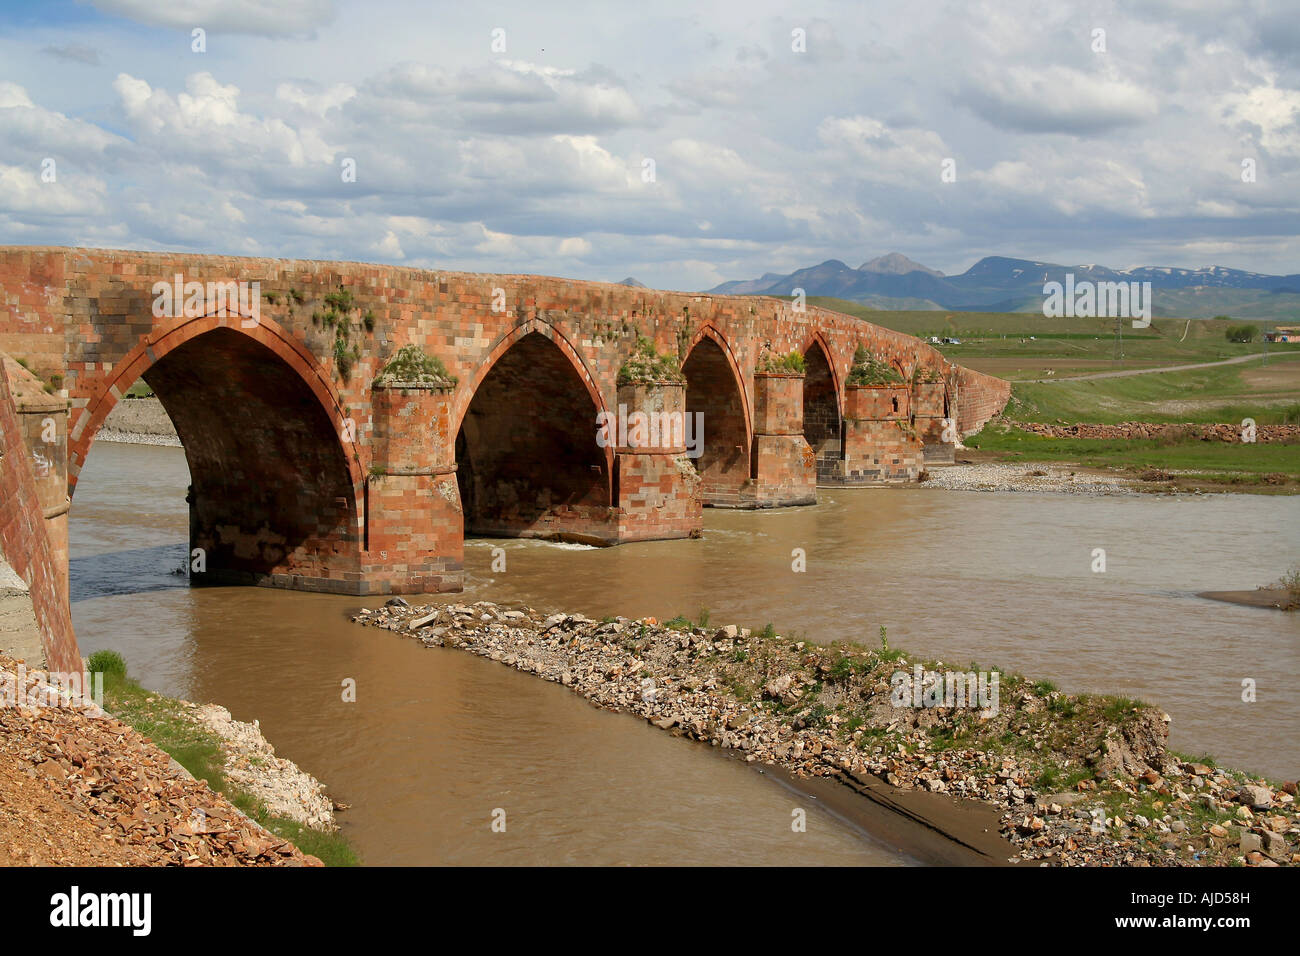 Cobandede Bridge over the Aras, Turkey, East Anatolia - Stock Image